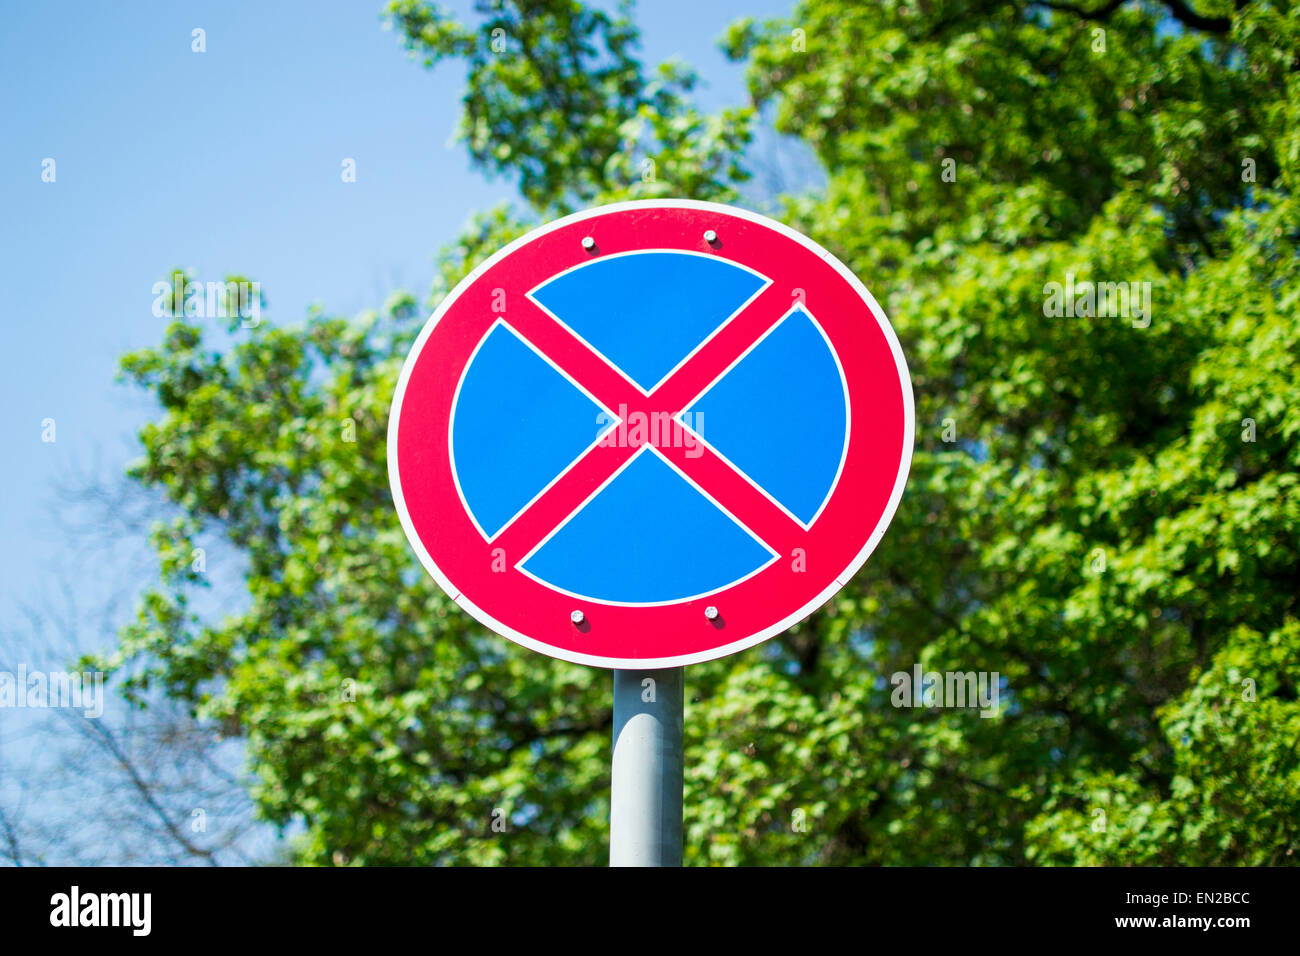 No parking stopping or waiting road sign - Stock Image